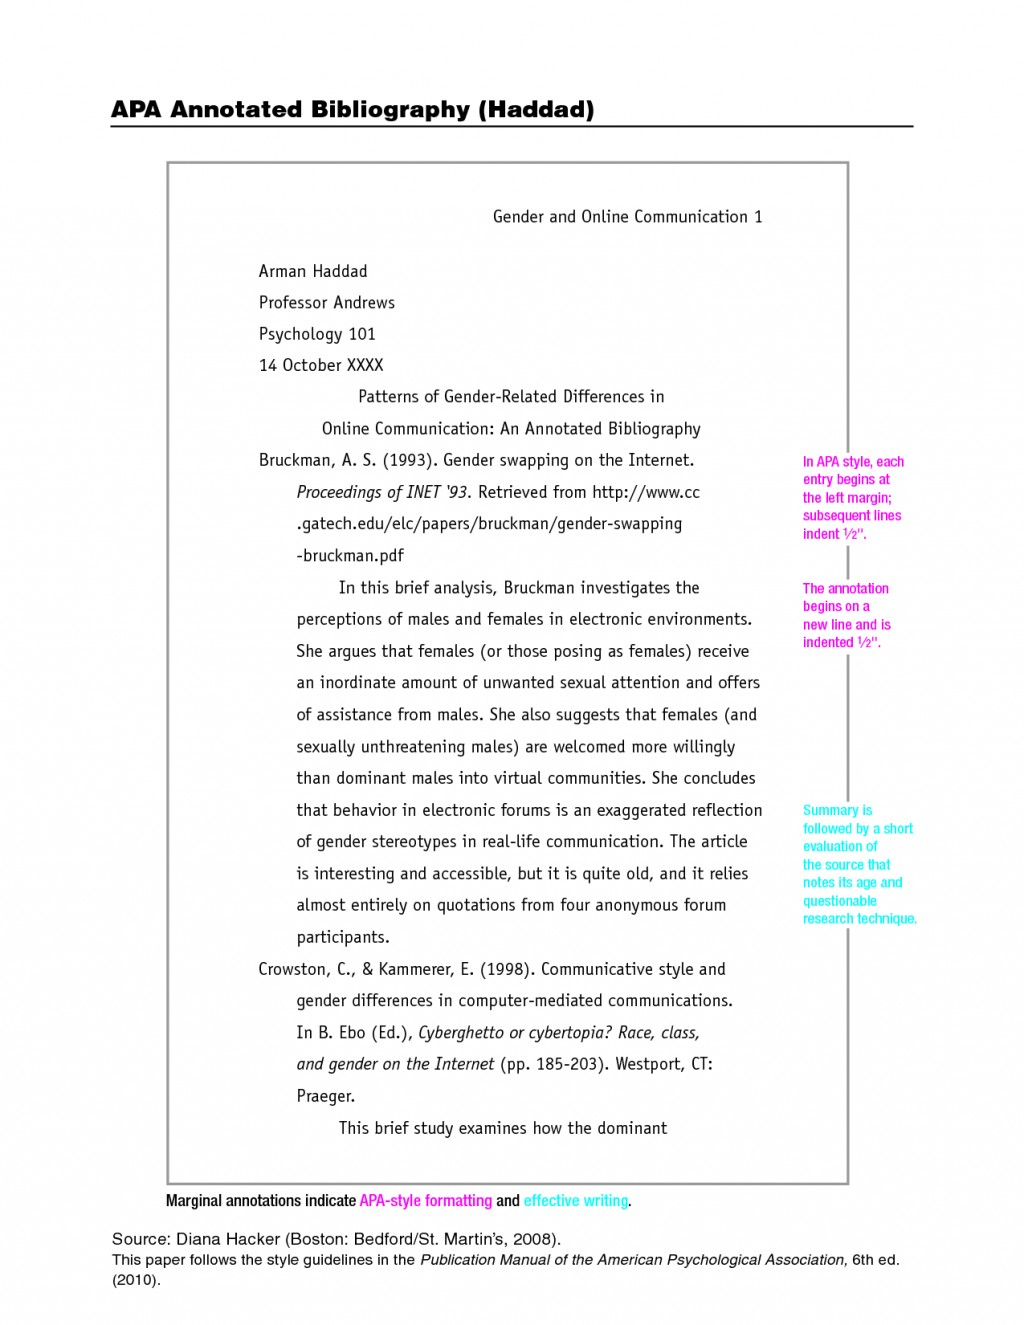 002 Apa Paper Template Si6pk8fz Essay Best Outline Style Structure Format Word 2007 Large